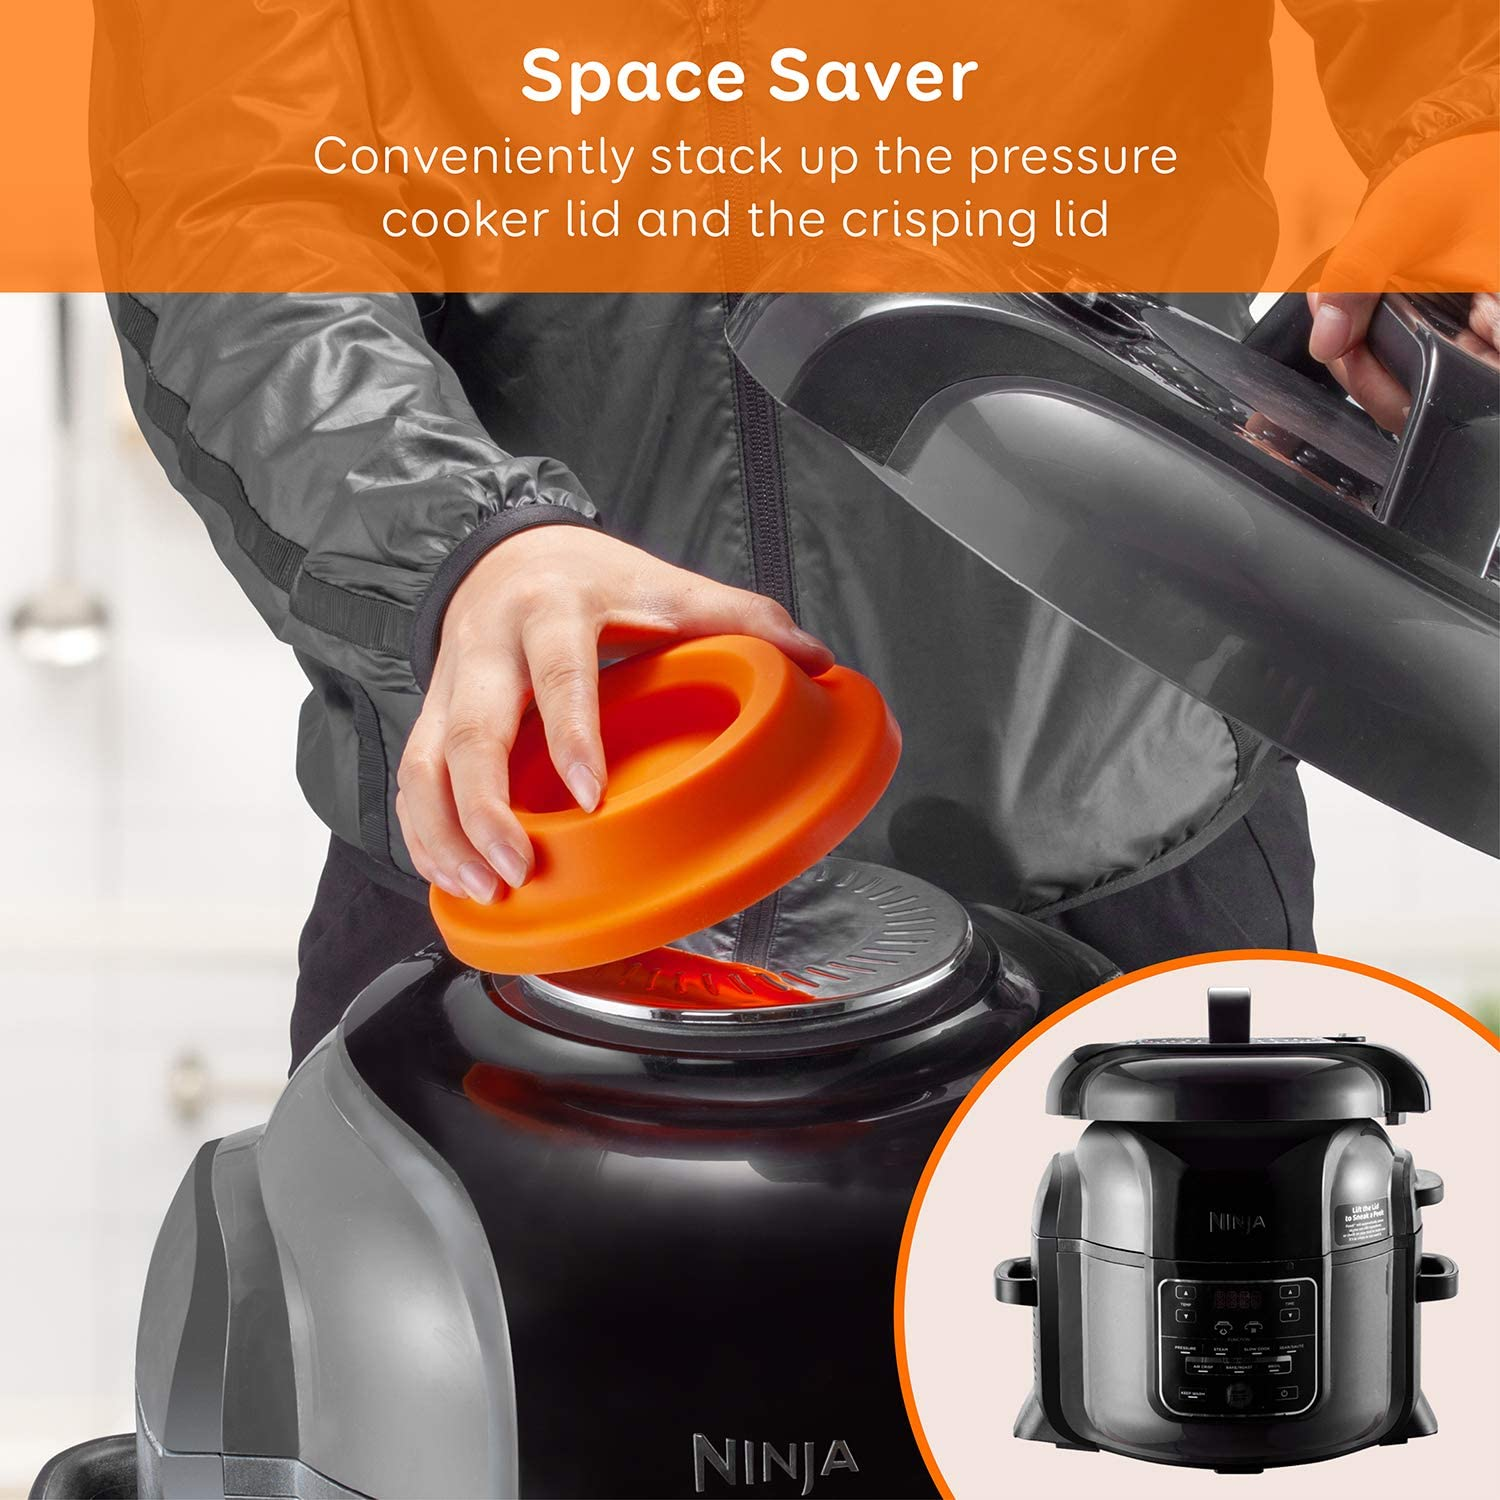 2 in 1 Kitchen Accessory Compatible with Ninja Foodi Pressure Cooker and Air Fryer 5 Qt 6.5 Qt and 8 Quart Black Fox Claw Lid Stand Silicone Lid Holder Accessories and Steam Release Diverter